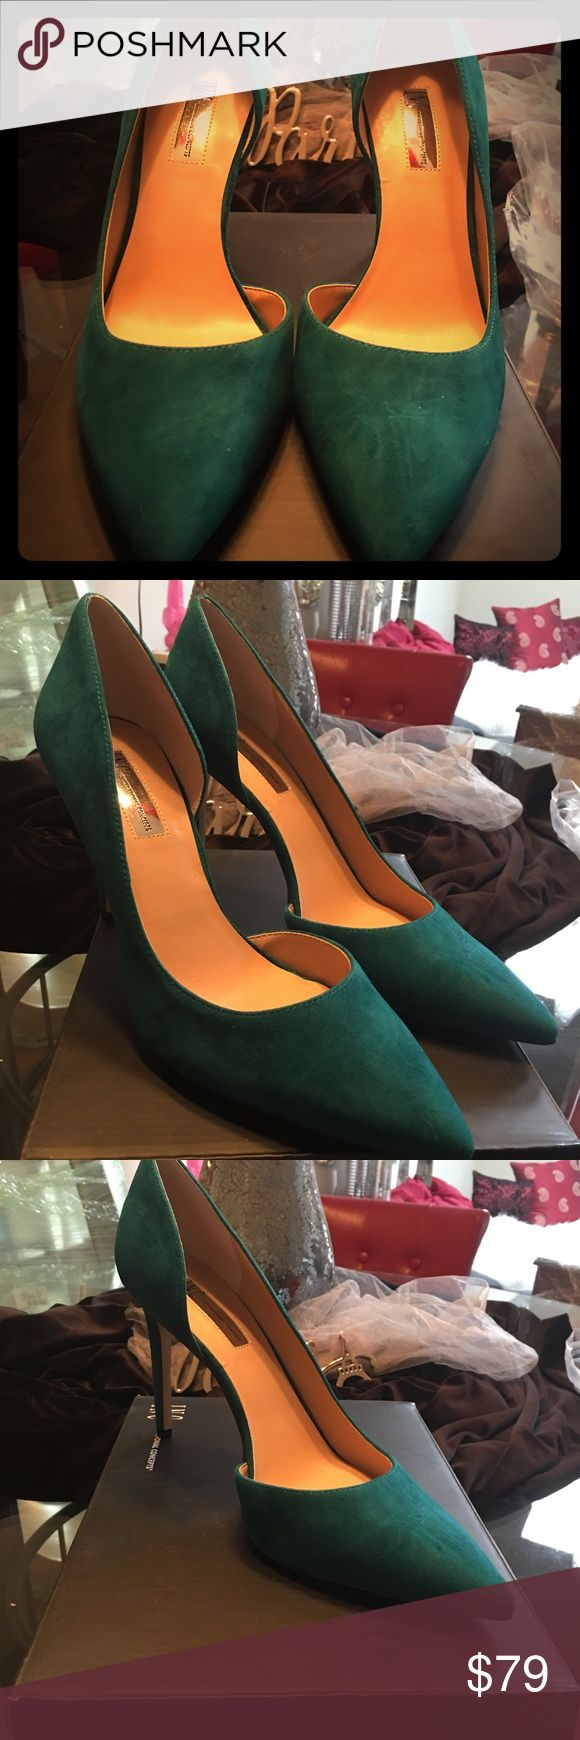 """INC Teal Suede D' Orsay Pumps (Size 10) Create a chic look with this d'Orsay pump that is power packed!! This exquisite color is SOLD OUT in this size and is the most amazing Teal green I have ever seen this season! This pump is one of those basic staples that every woman MUST have..!!!  Brand: International Concepts (INC) Size: 10 Heel Height: 3-3/4"""" Condition: Brand New, Never Worn Color: Teal Green Material: Suede Comes with original box! INC International Concepts Shoes Heels"""